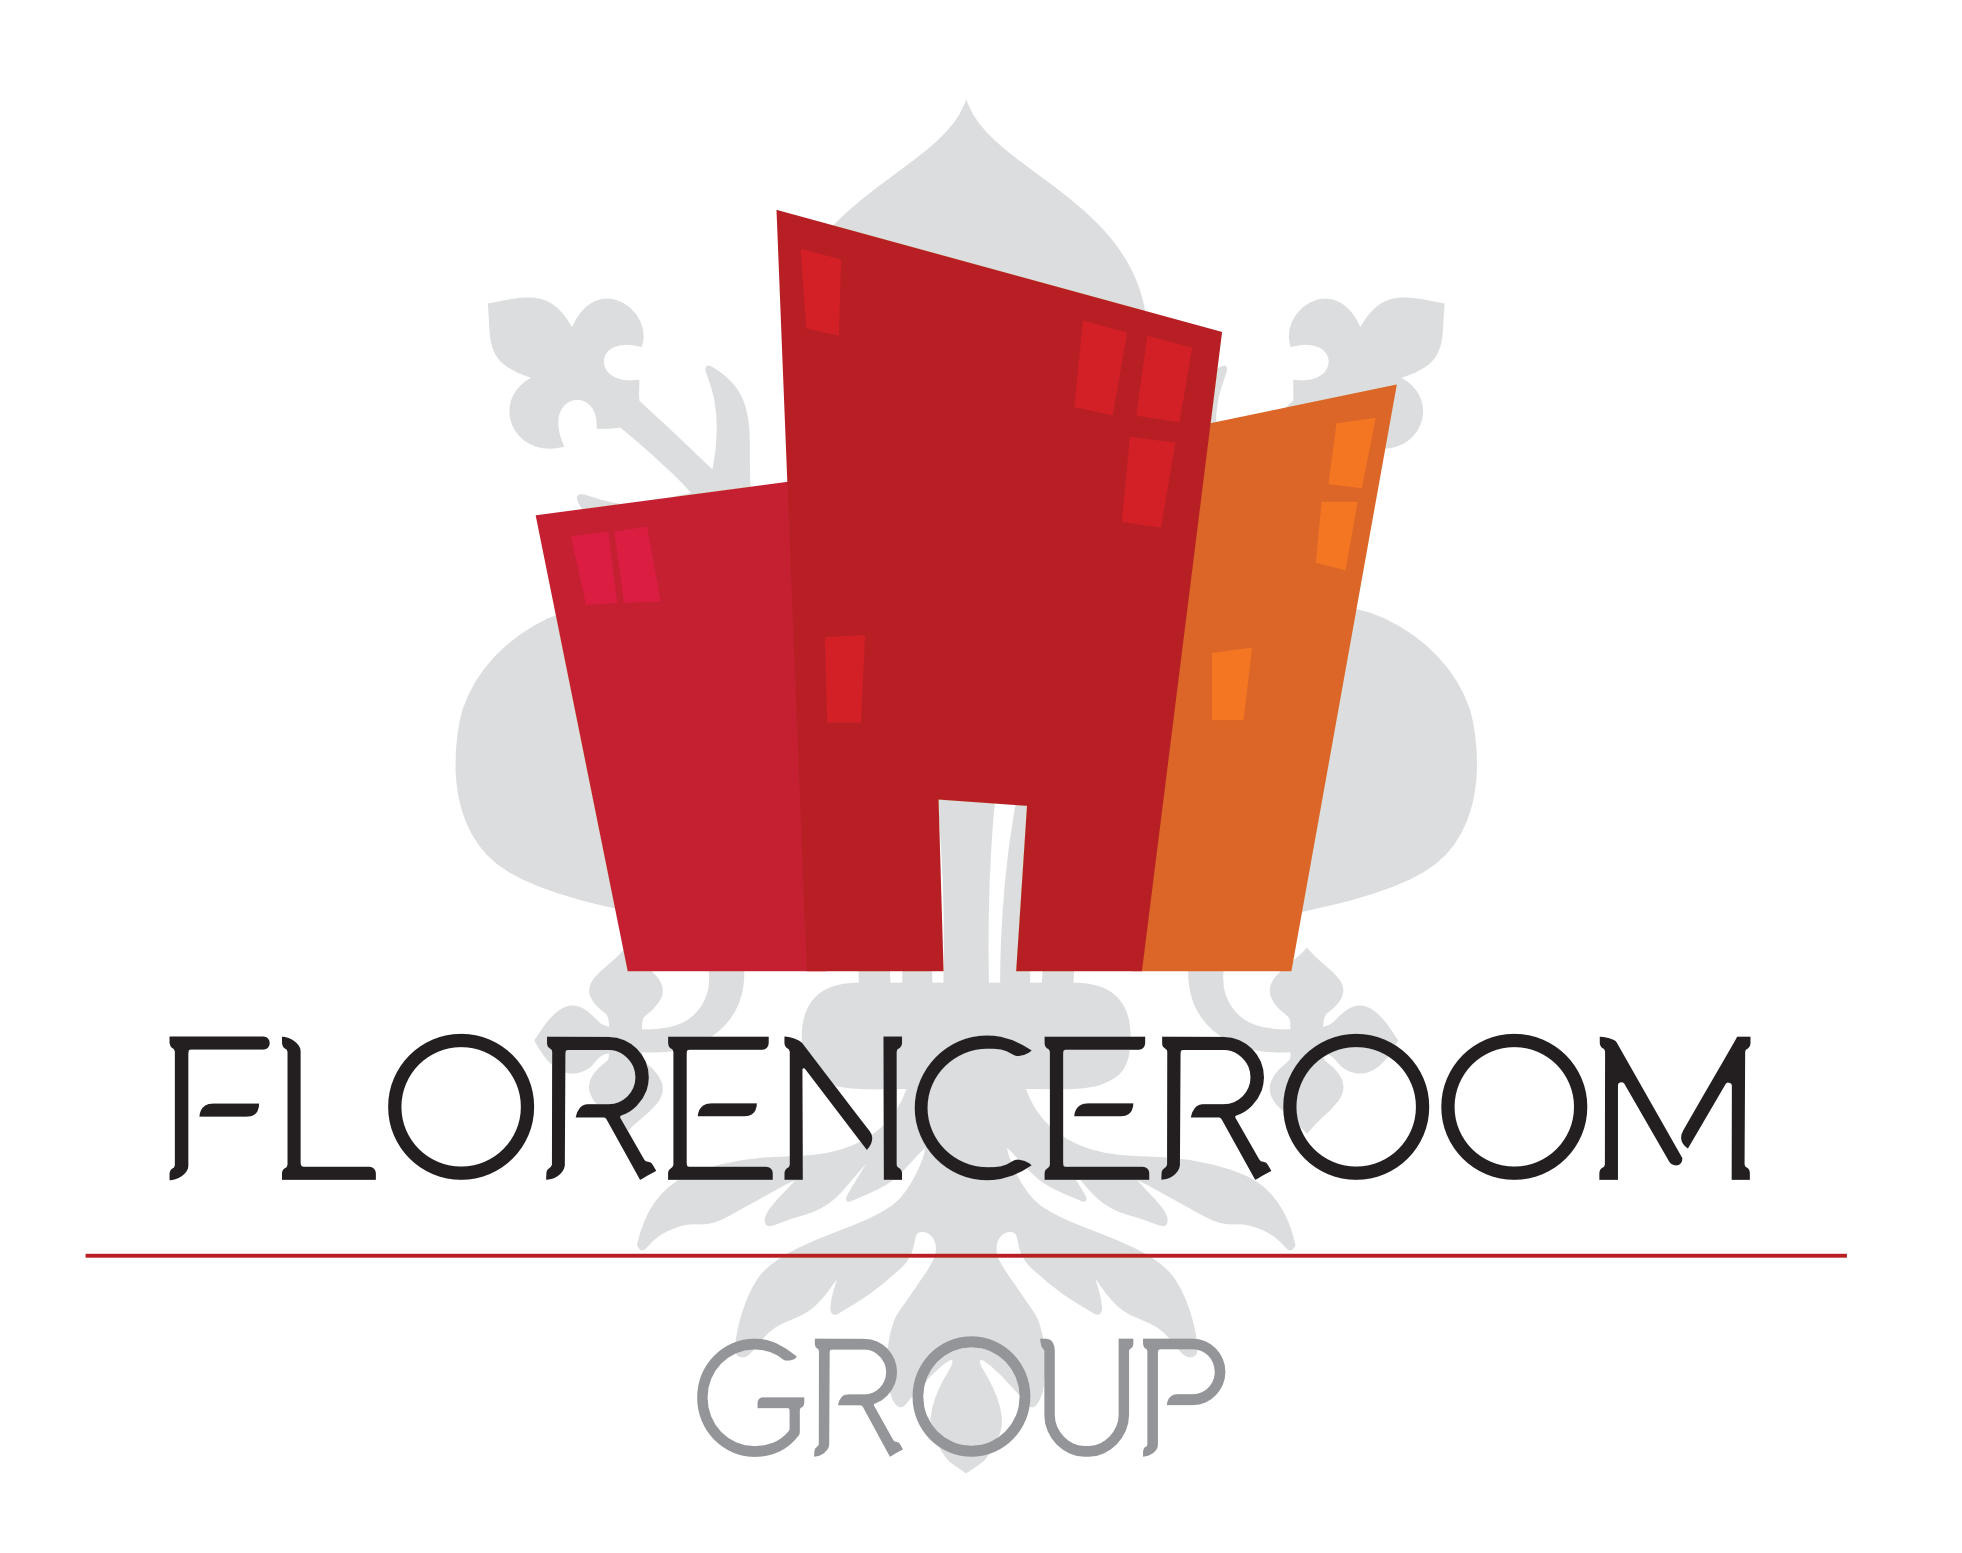 Florence Room Group